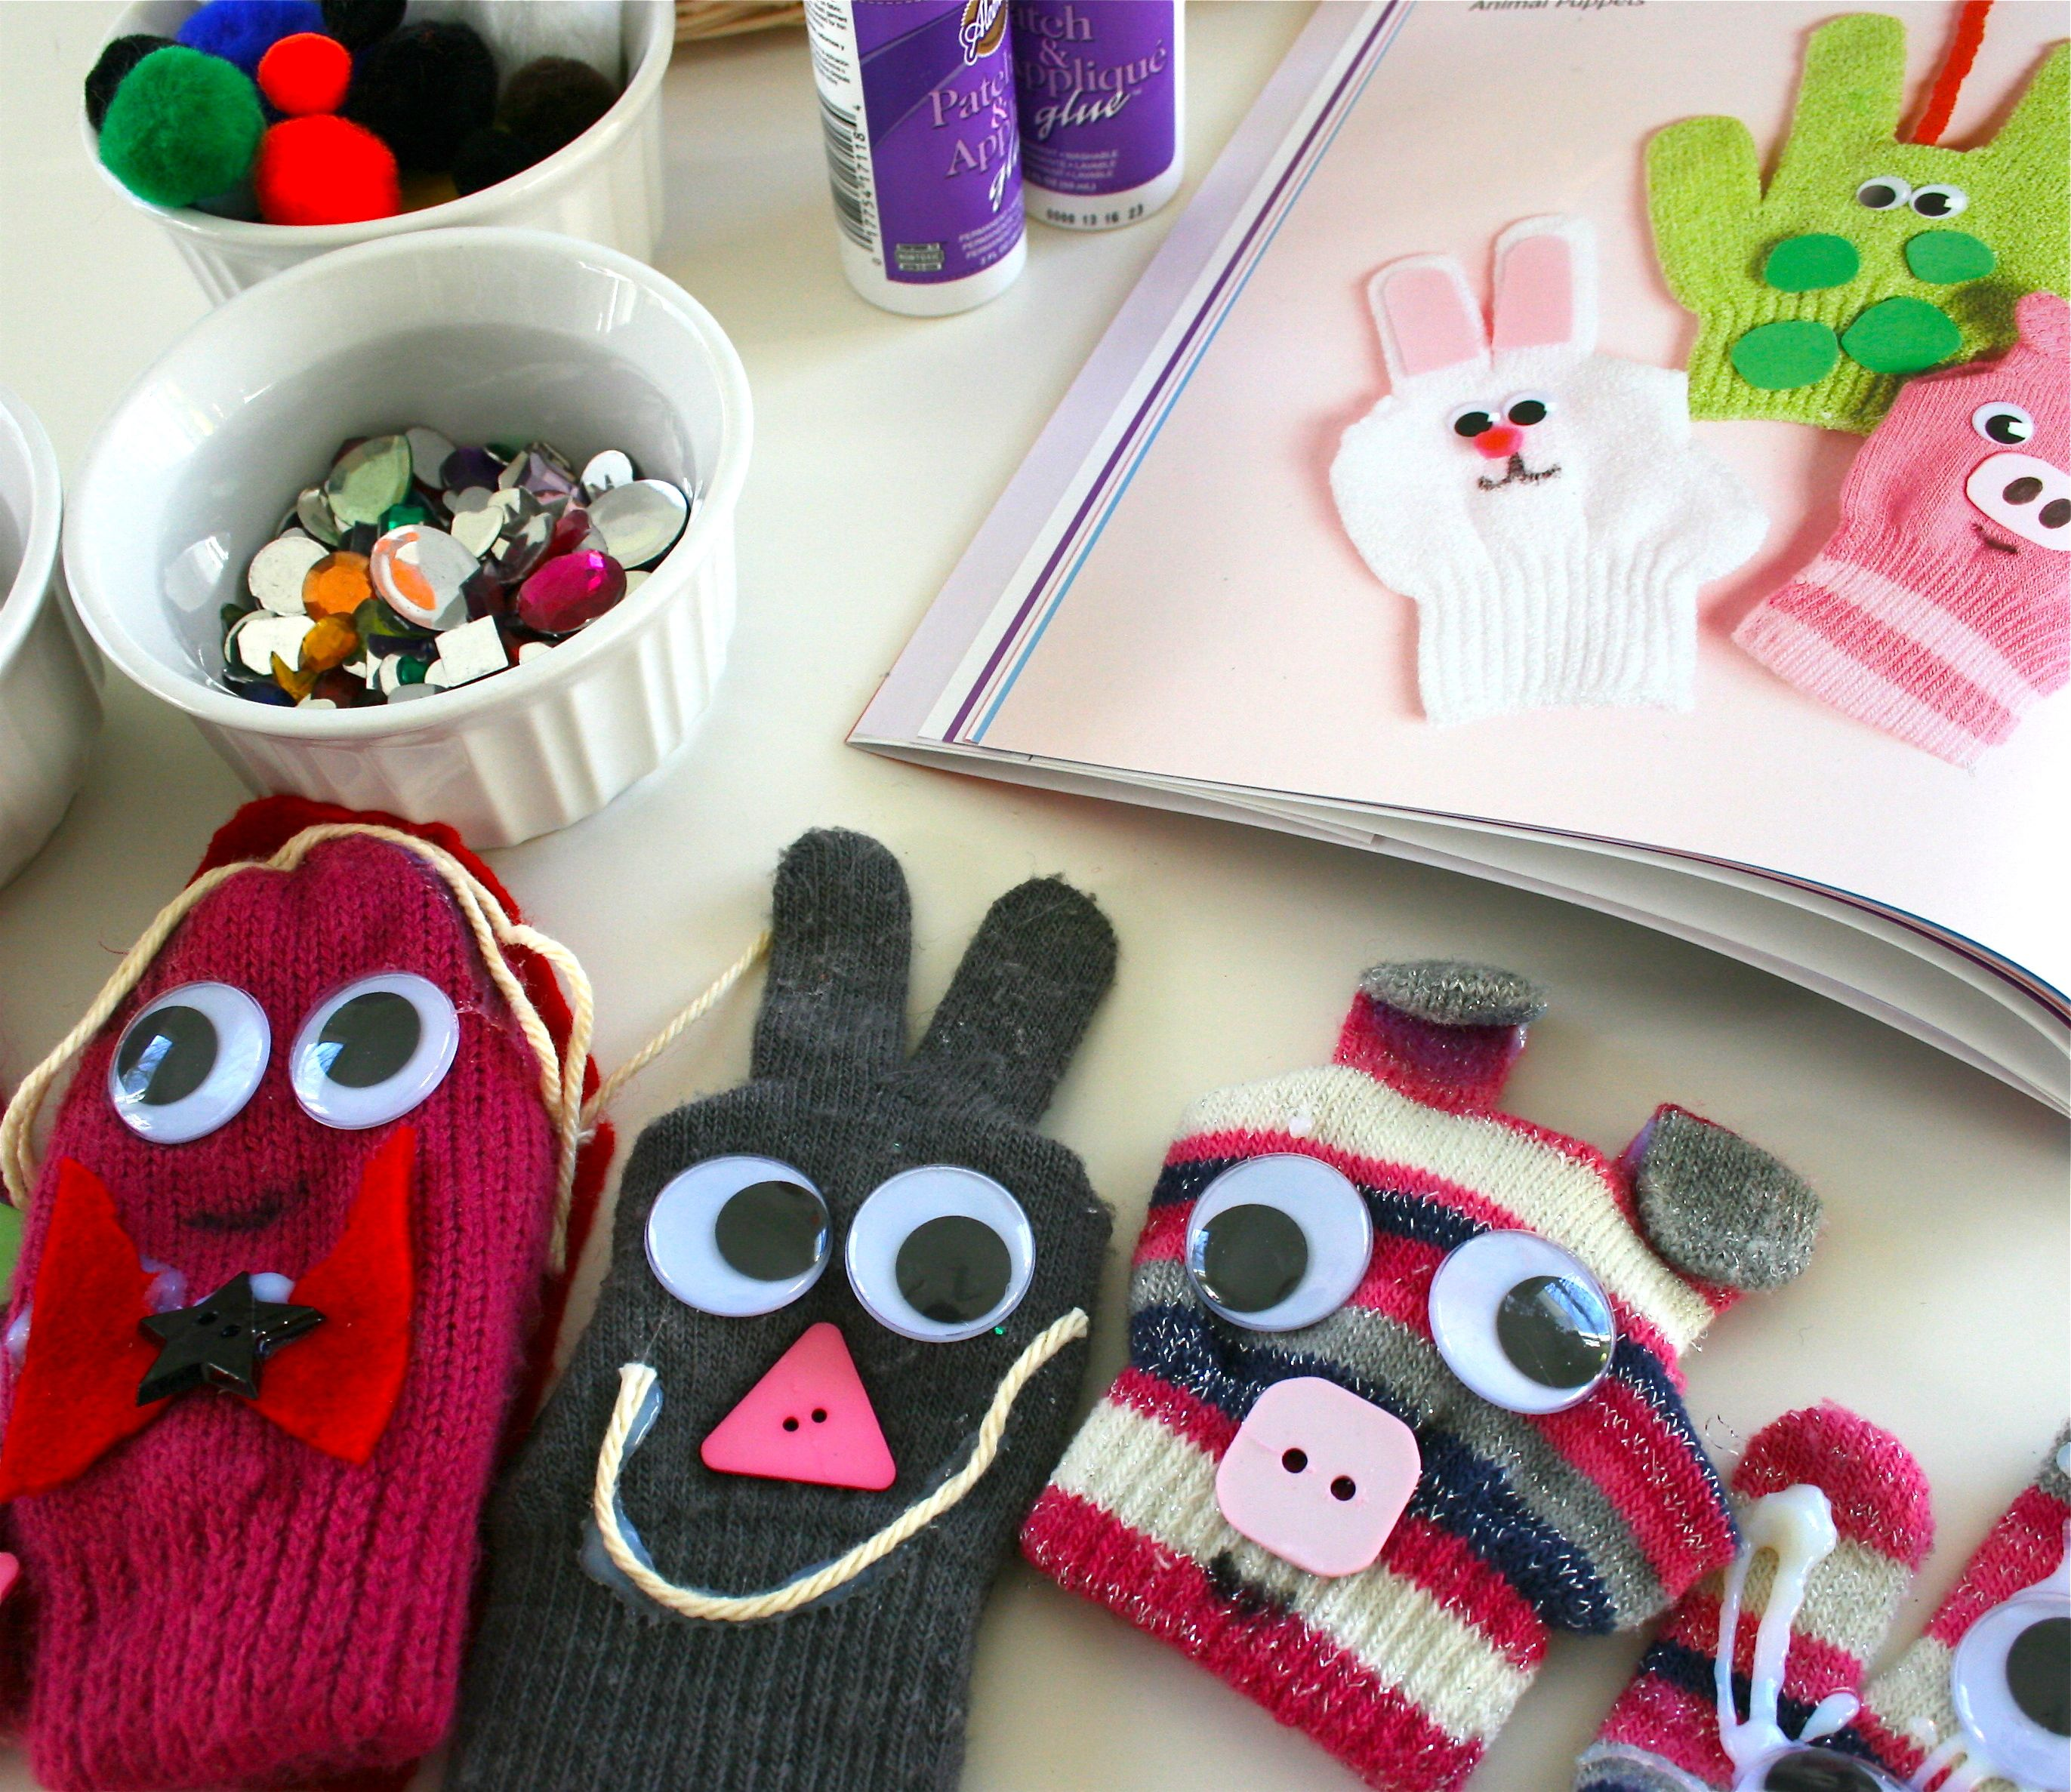 Repurposed mitten puppets.            Gloucestershire Resource Centre http://www.grcltd.org/scrapstore/